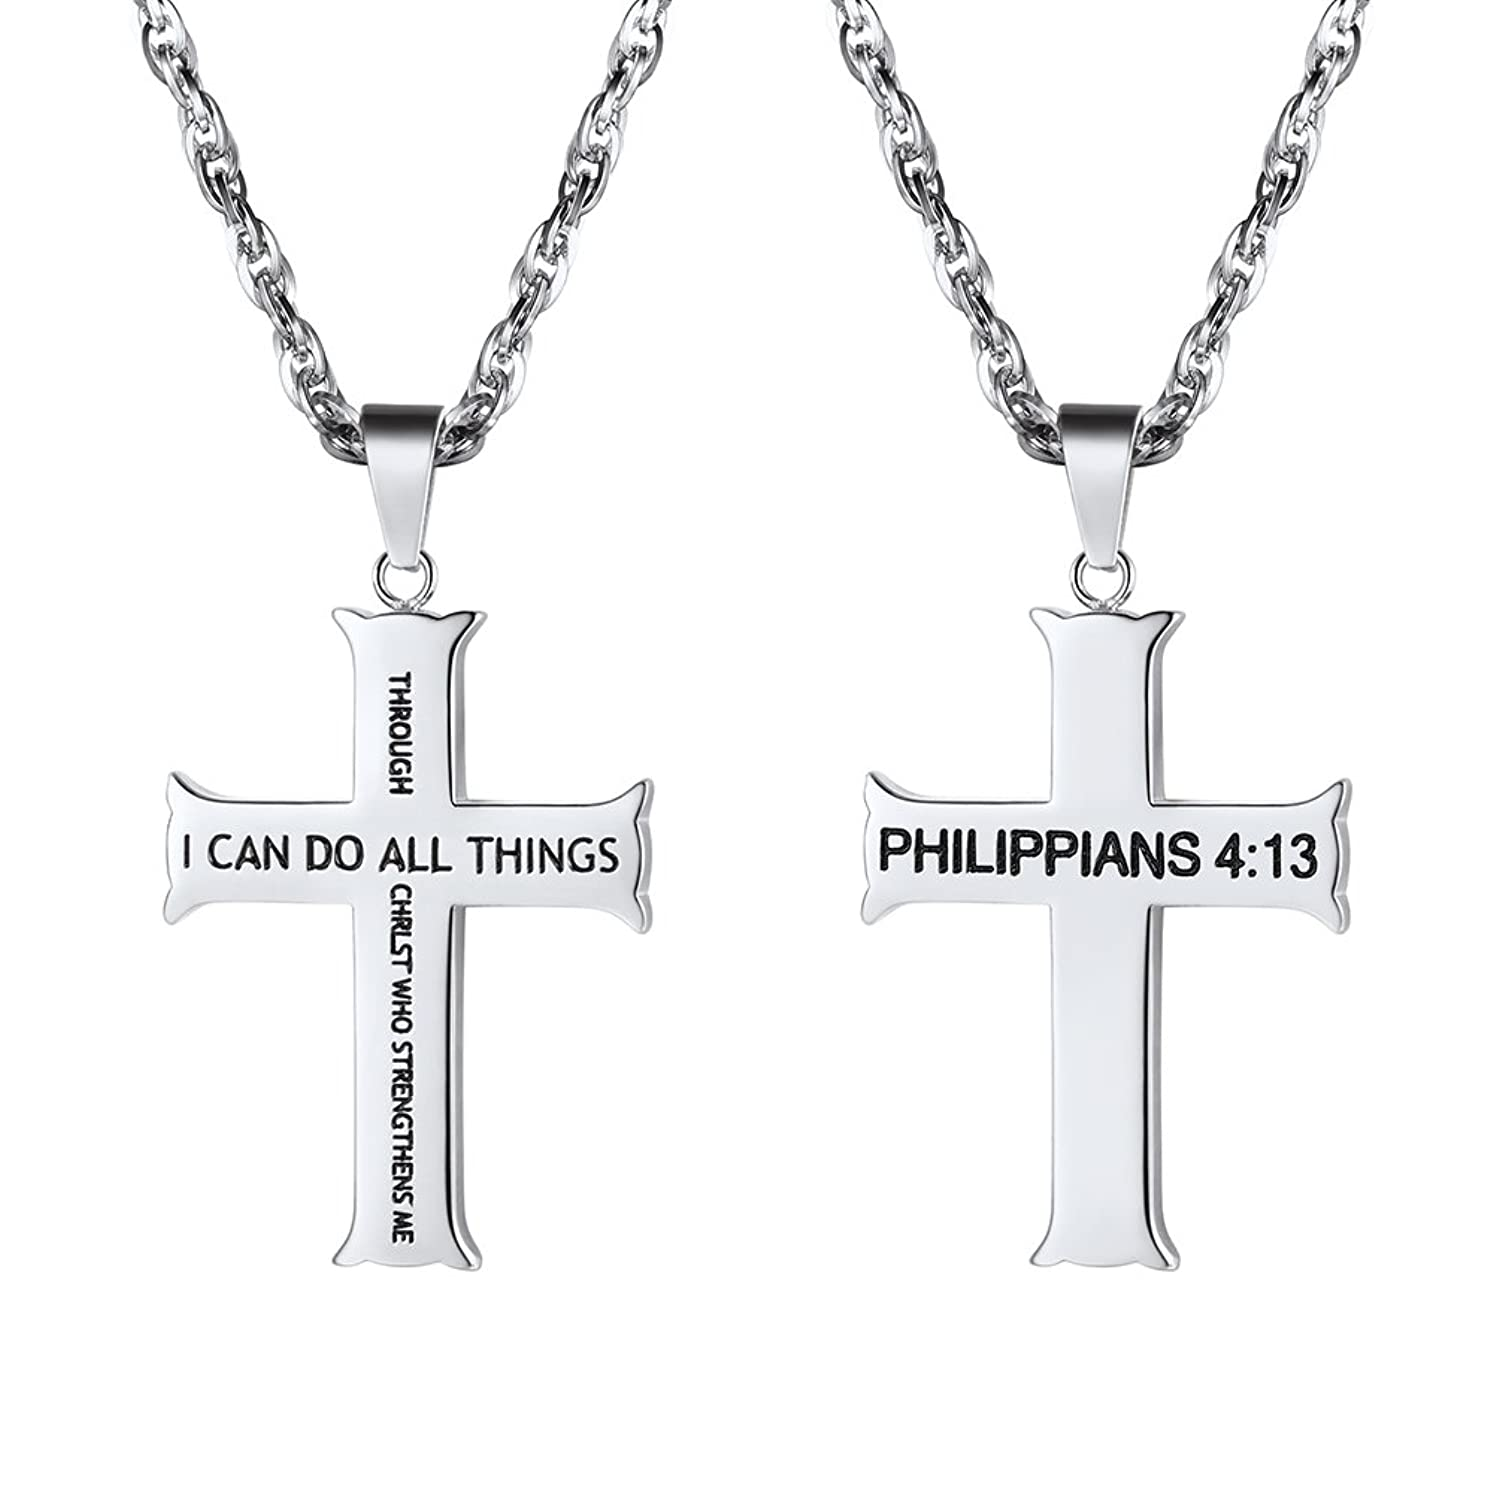 Cross Pendant Necklace,I Can Do All Things,Philippians 4:13,Mens Womens Jewelry Gift